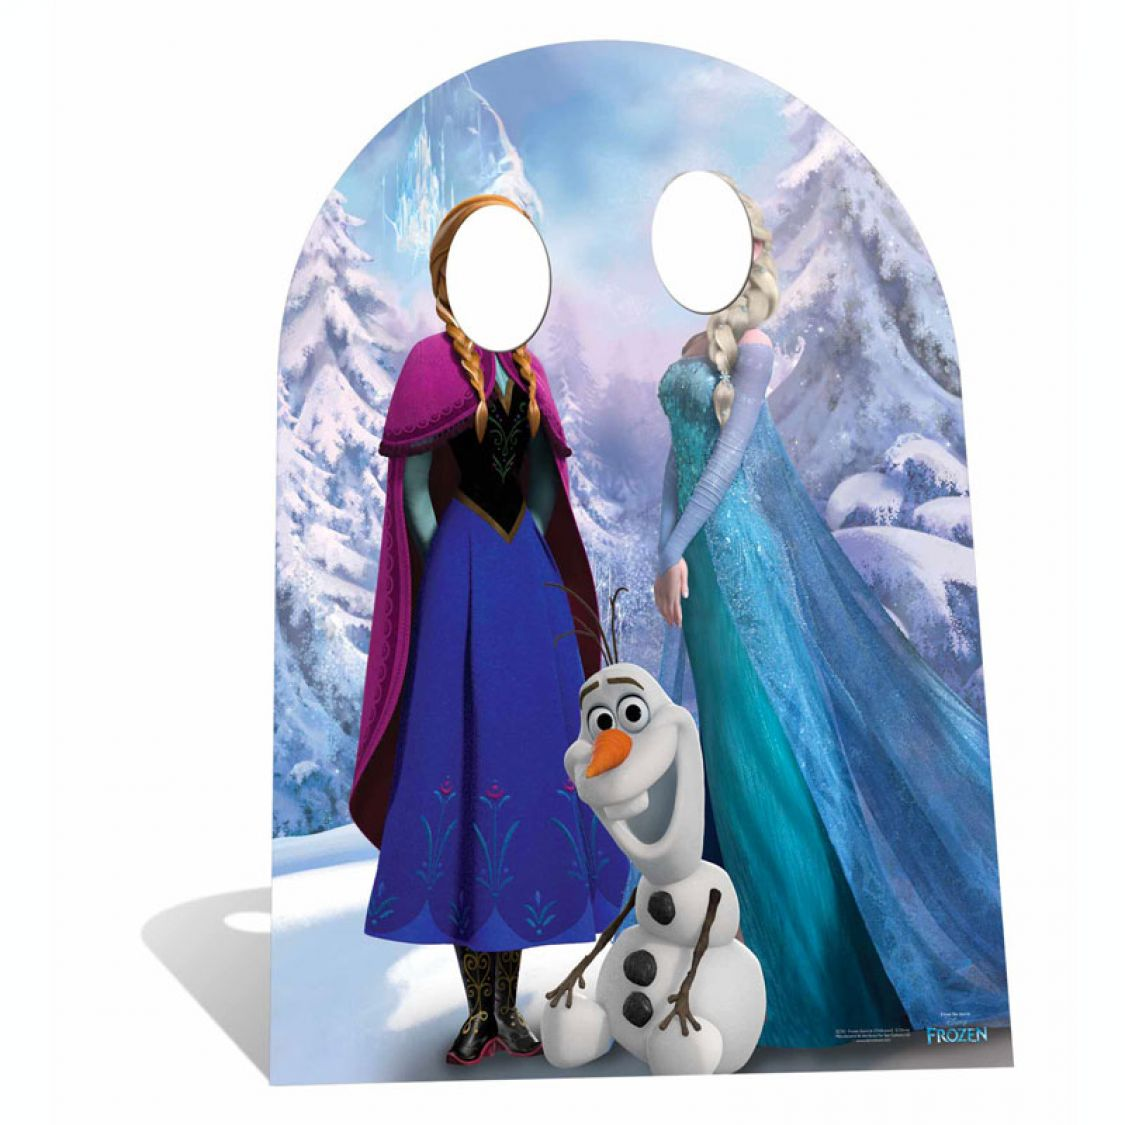 figurine passe t te reine des neiges enfant. Black Bedroom Furniture Sets. Home Design Ideas